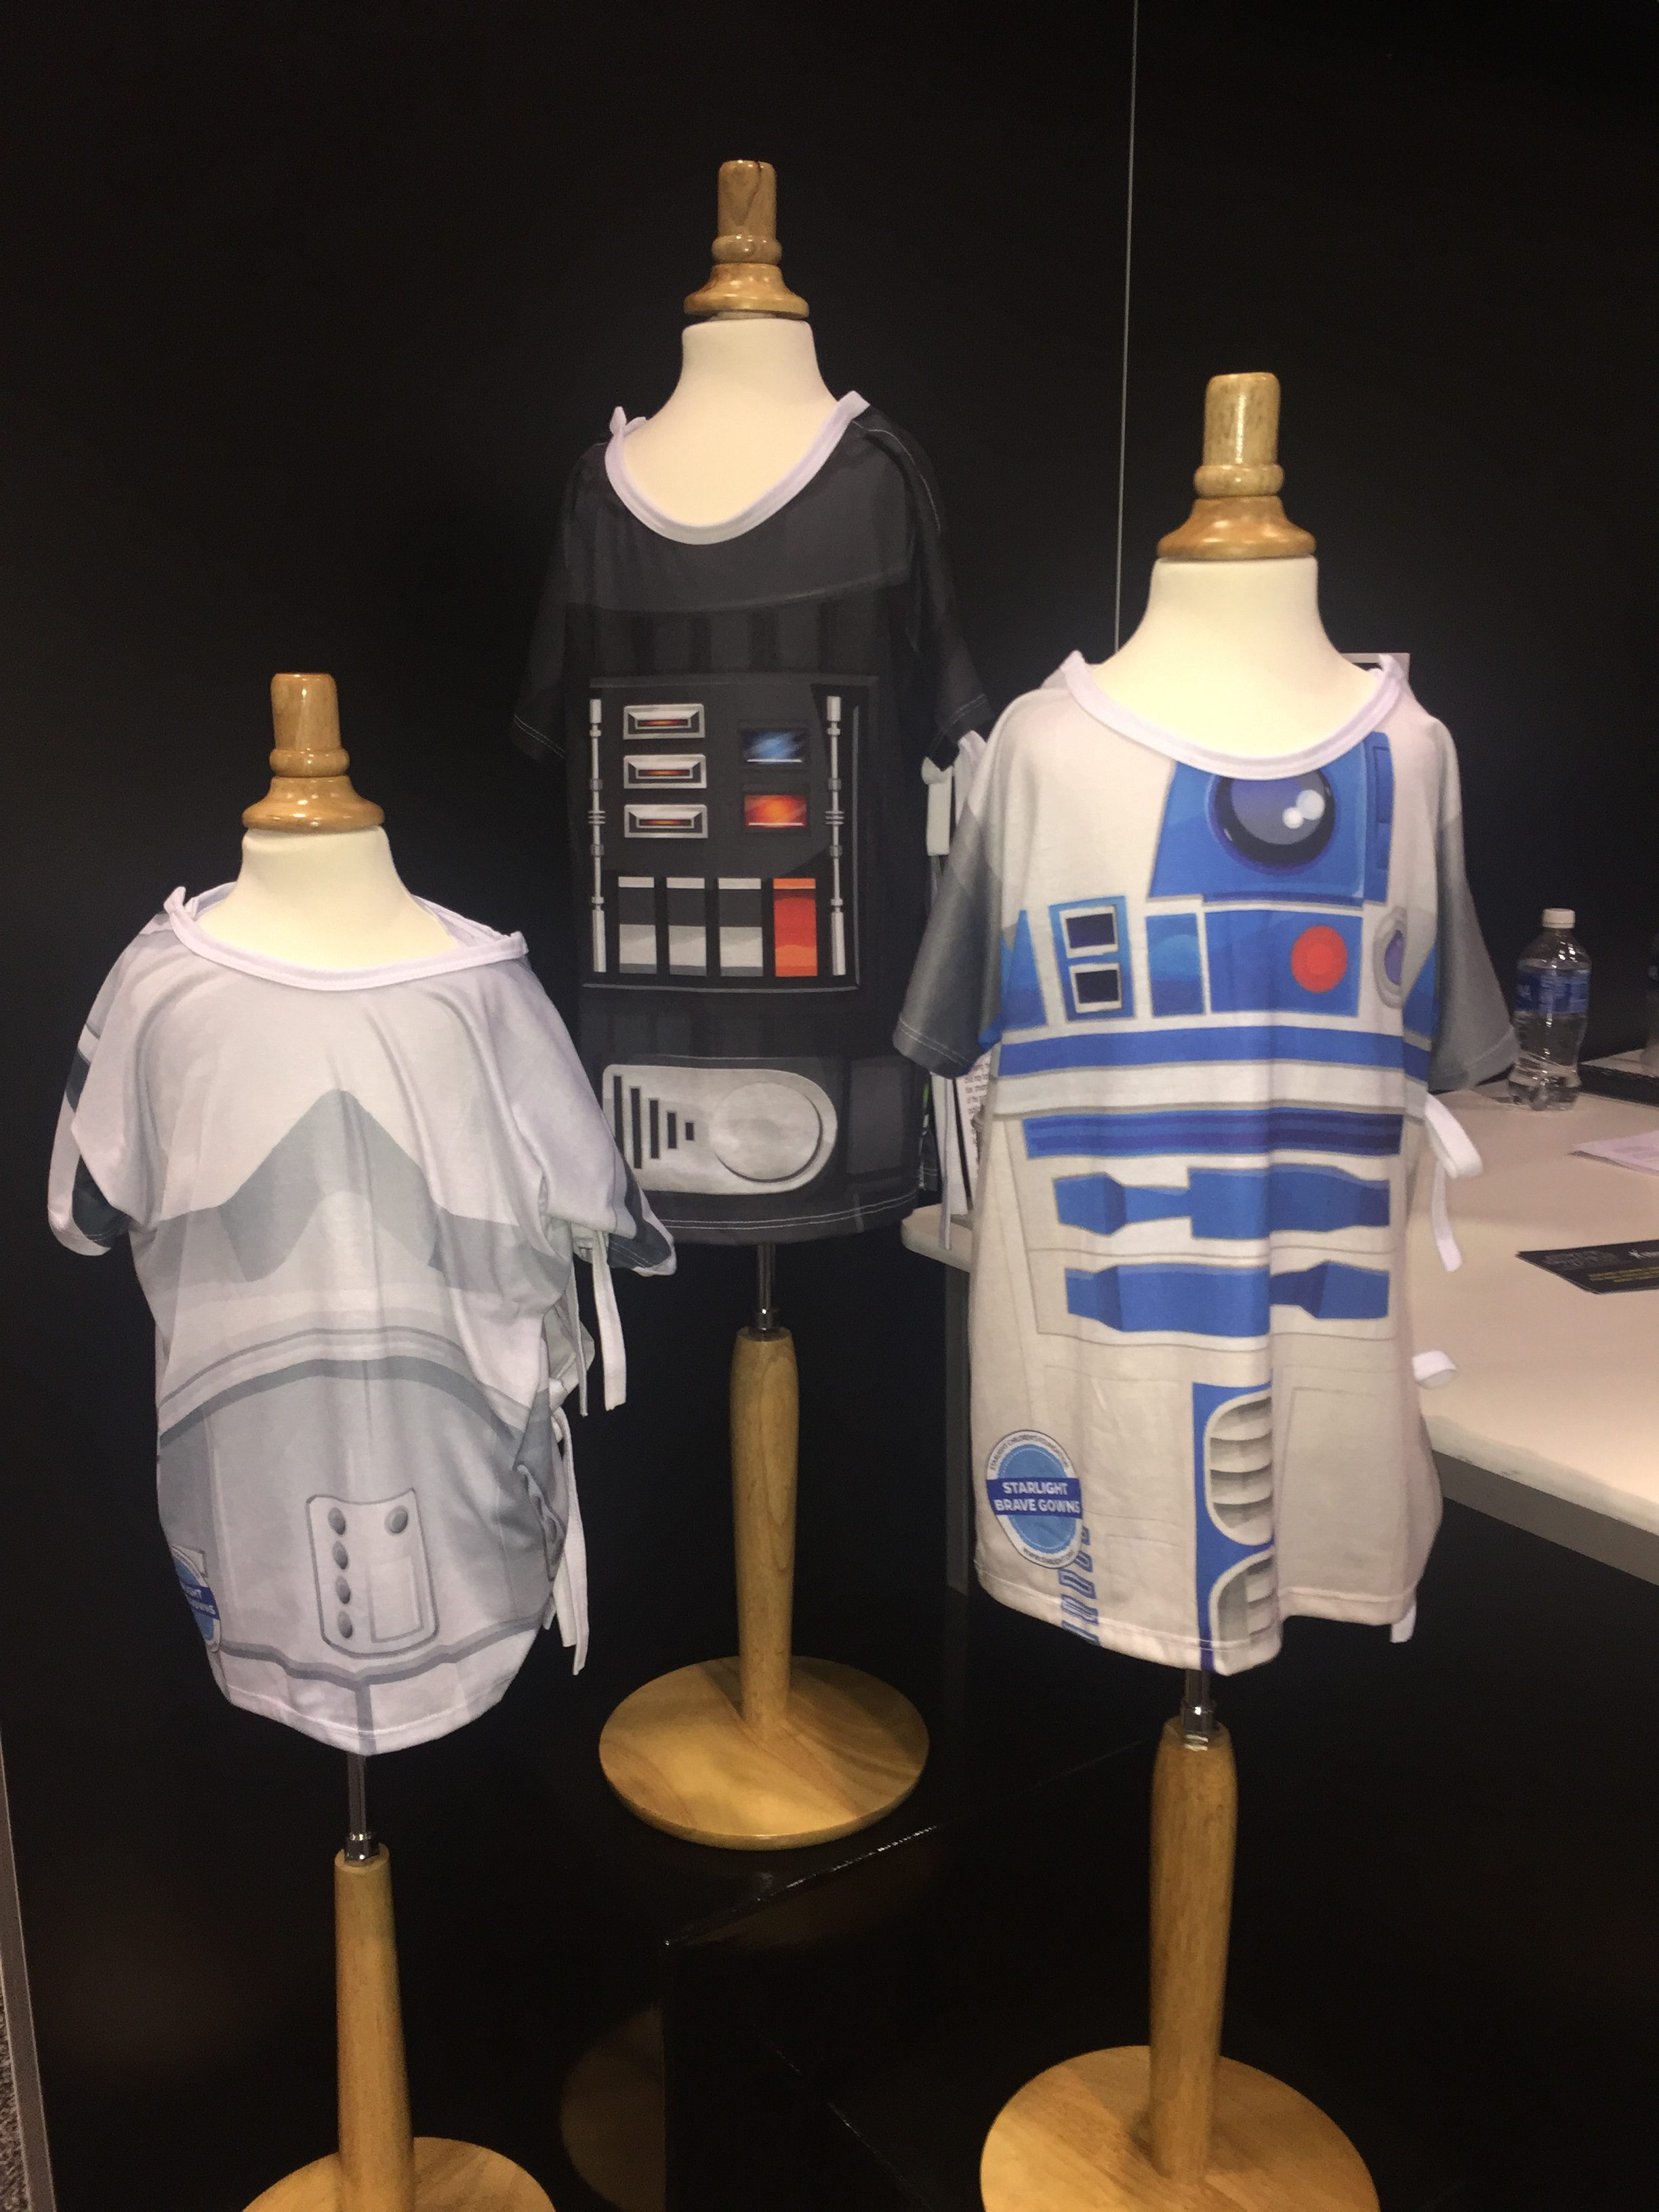 Starlight Foundation: Changing Lives Through the Magic of Star Wars